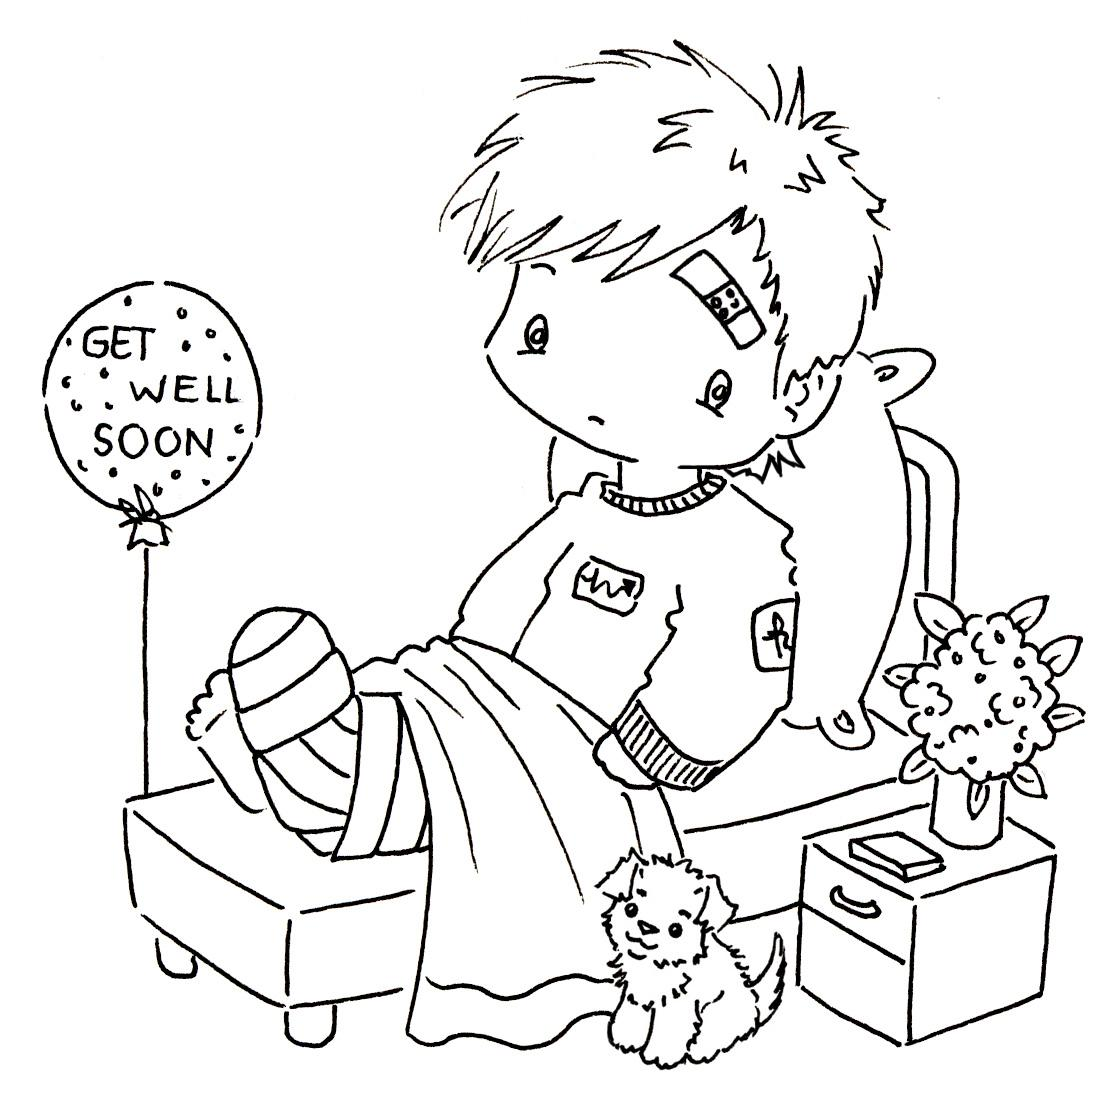 get well cards coloring pages - photo#9